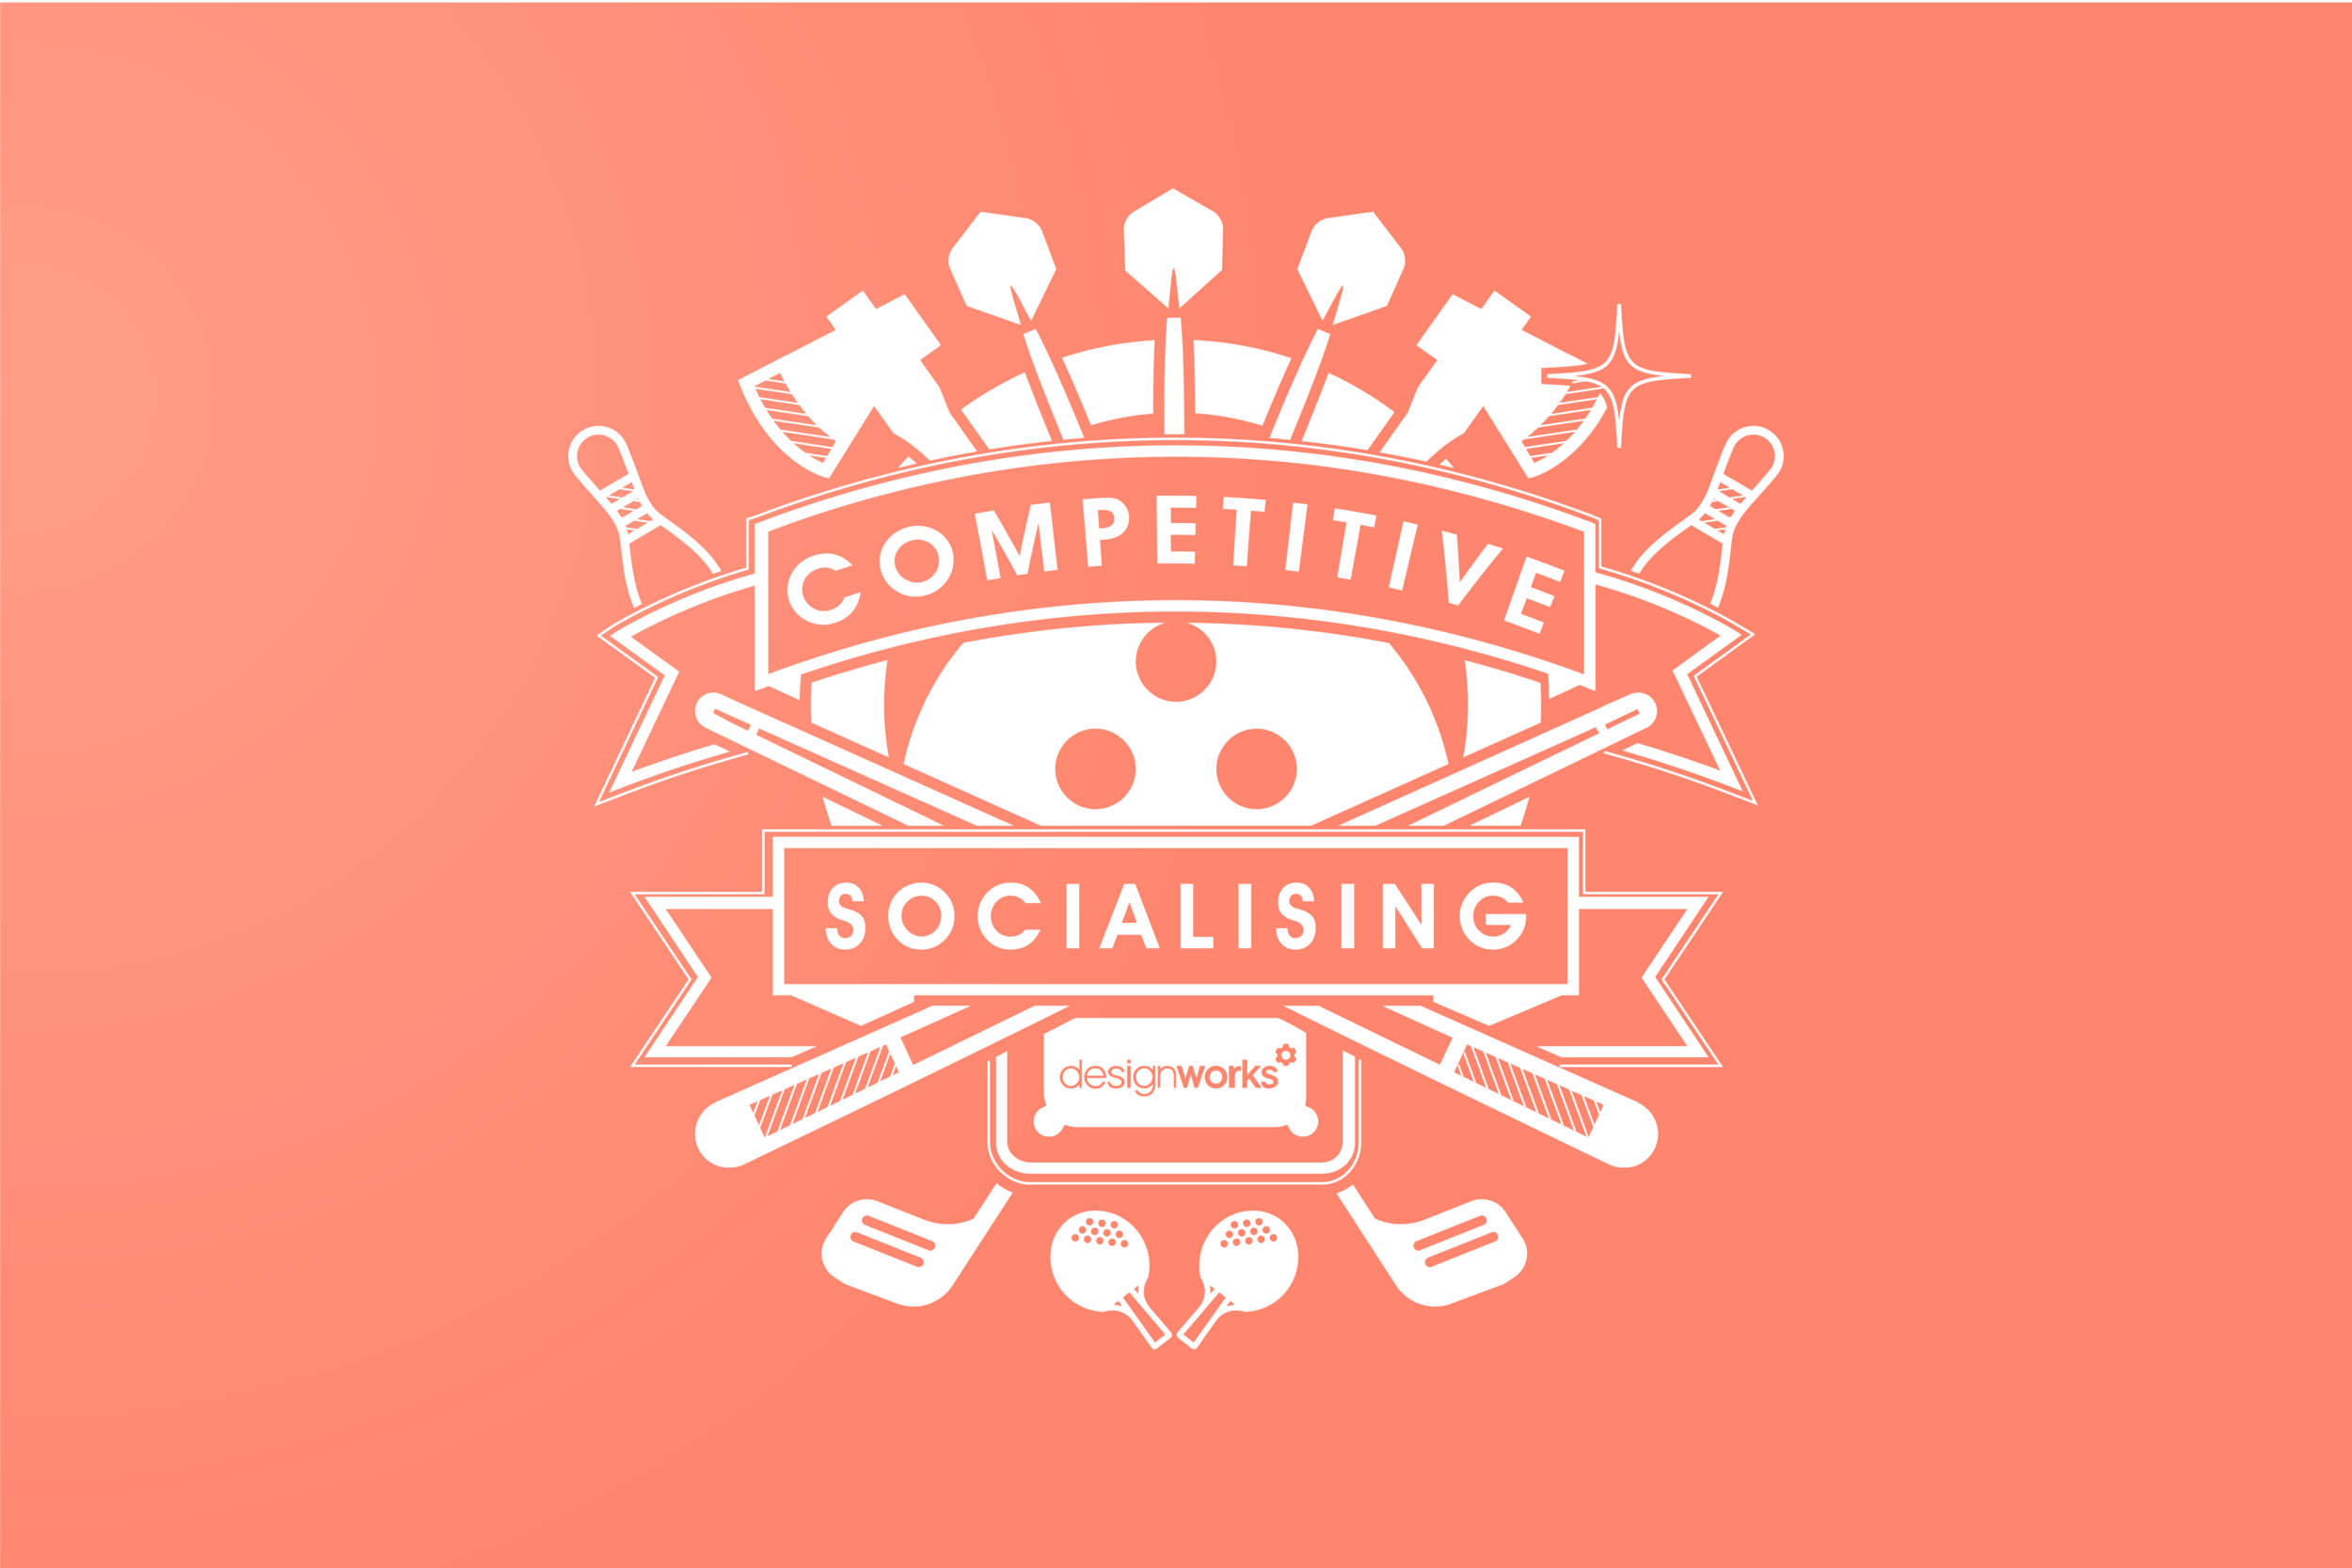 Competitive Socialising coat of arms style logo designworks.png